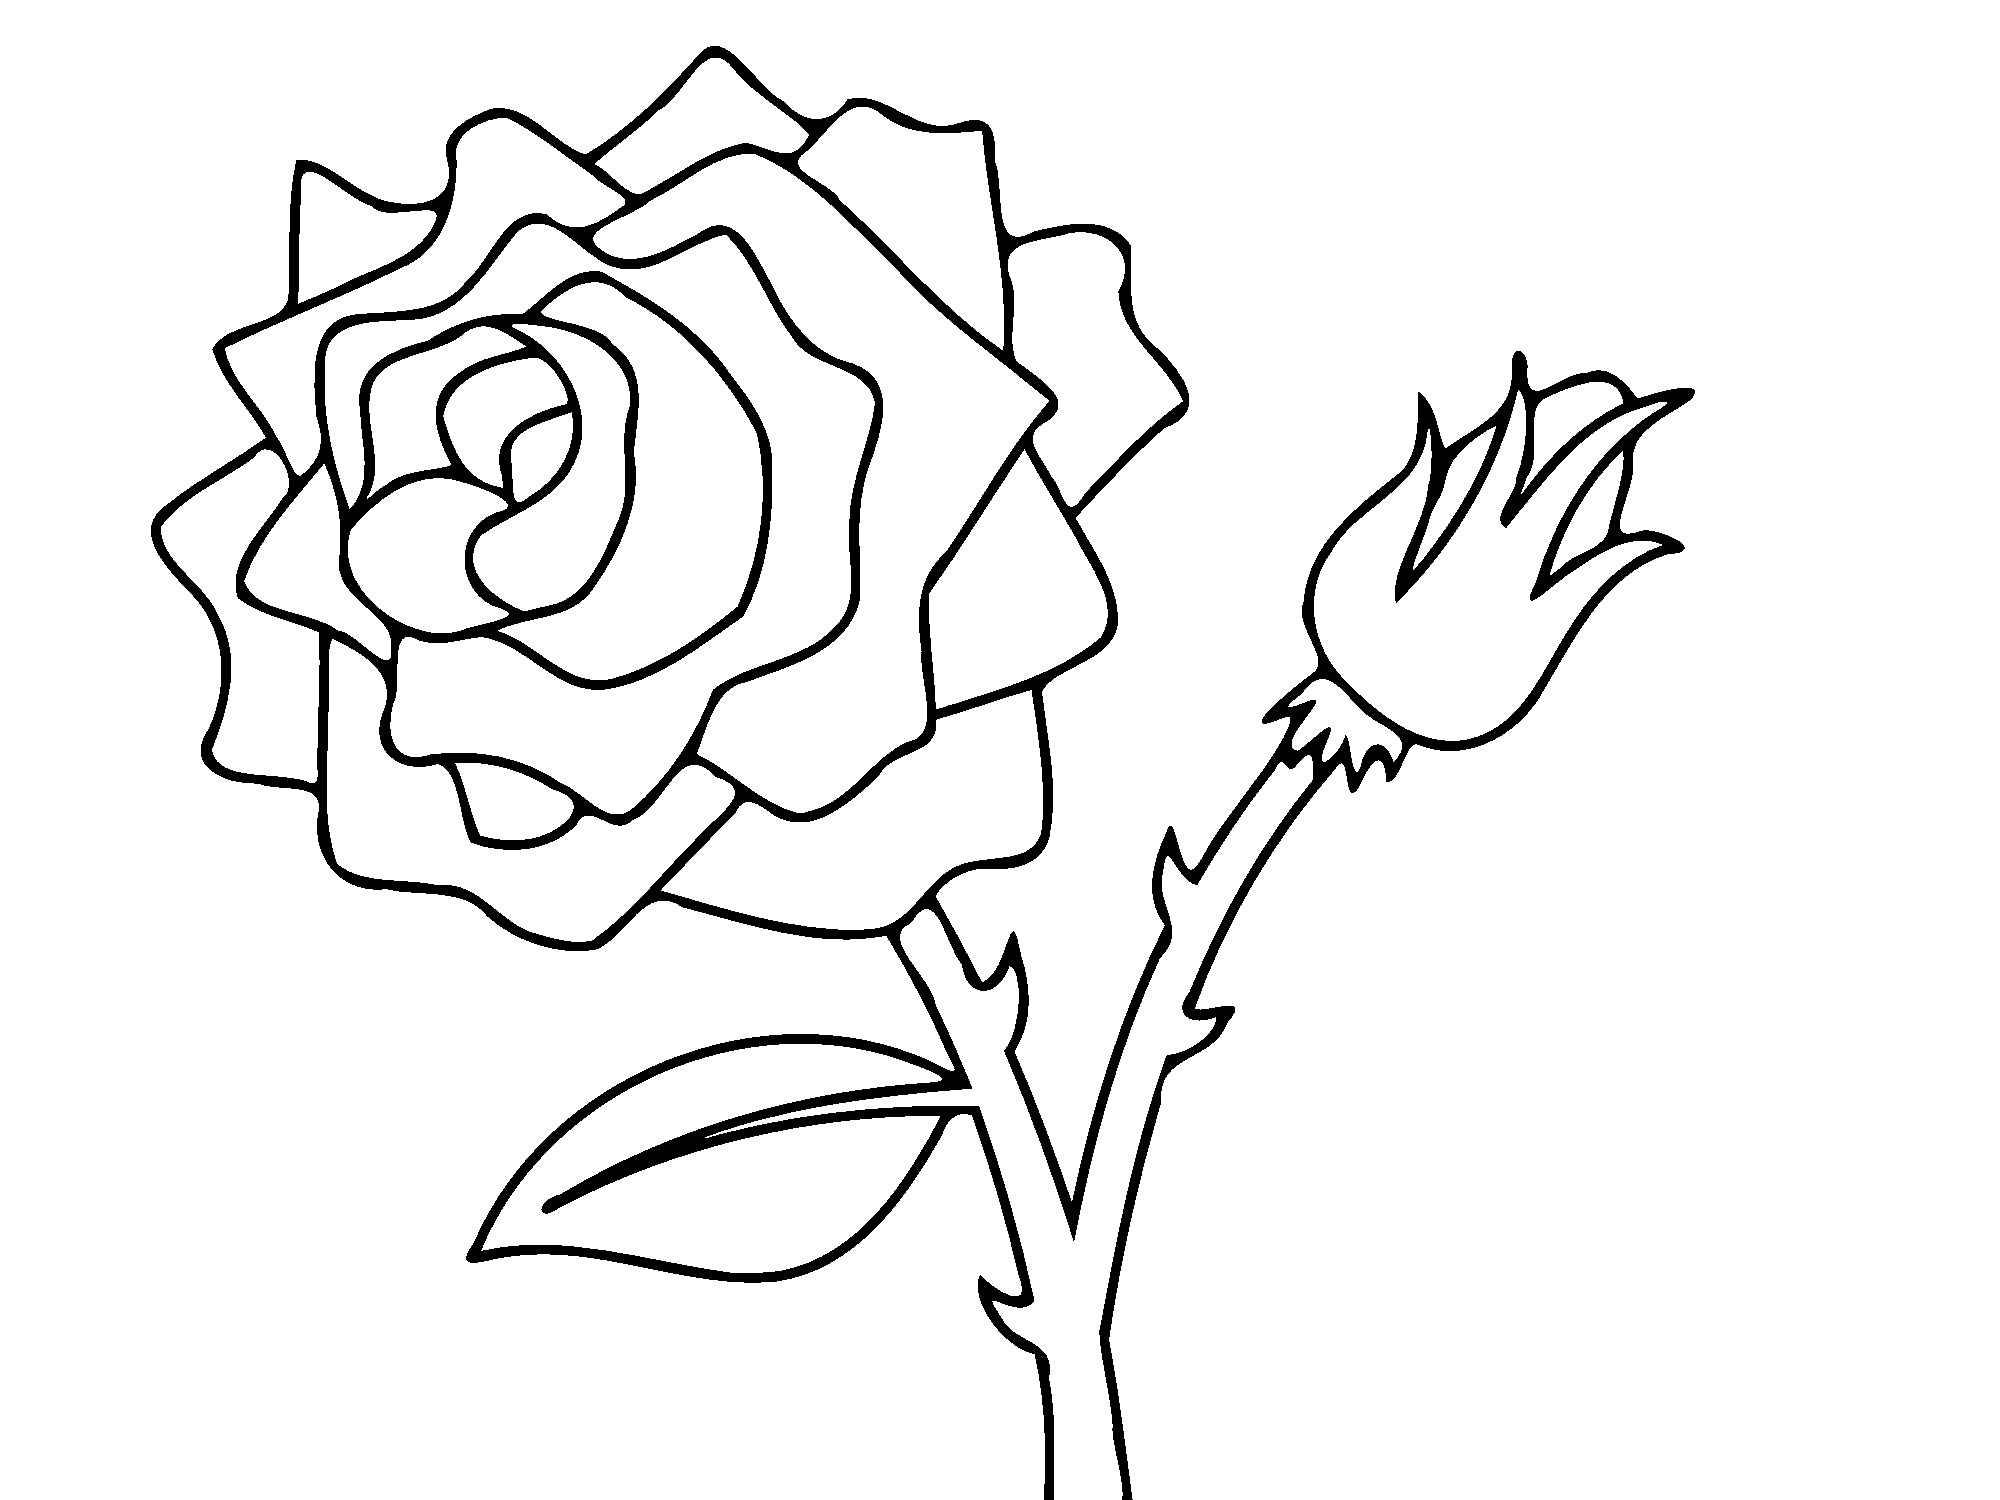 2000x1500 Crafty Coloring Pages Draw A Rose For Kids How To